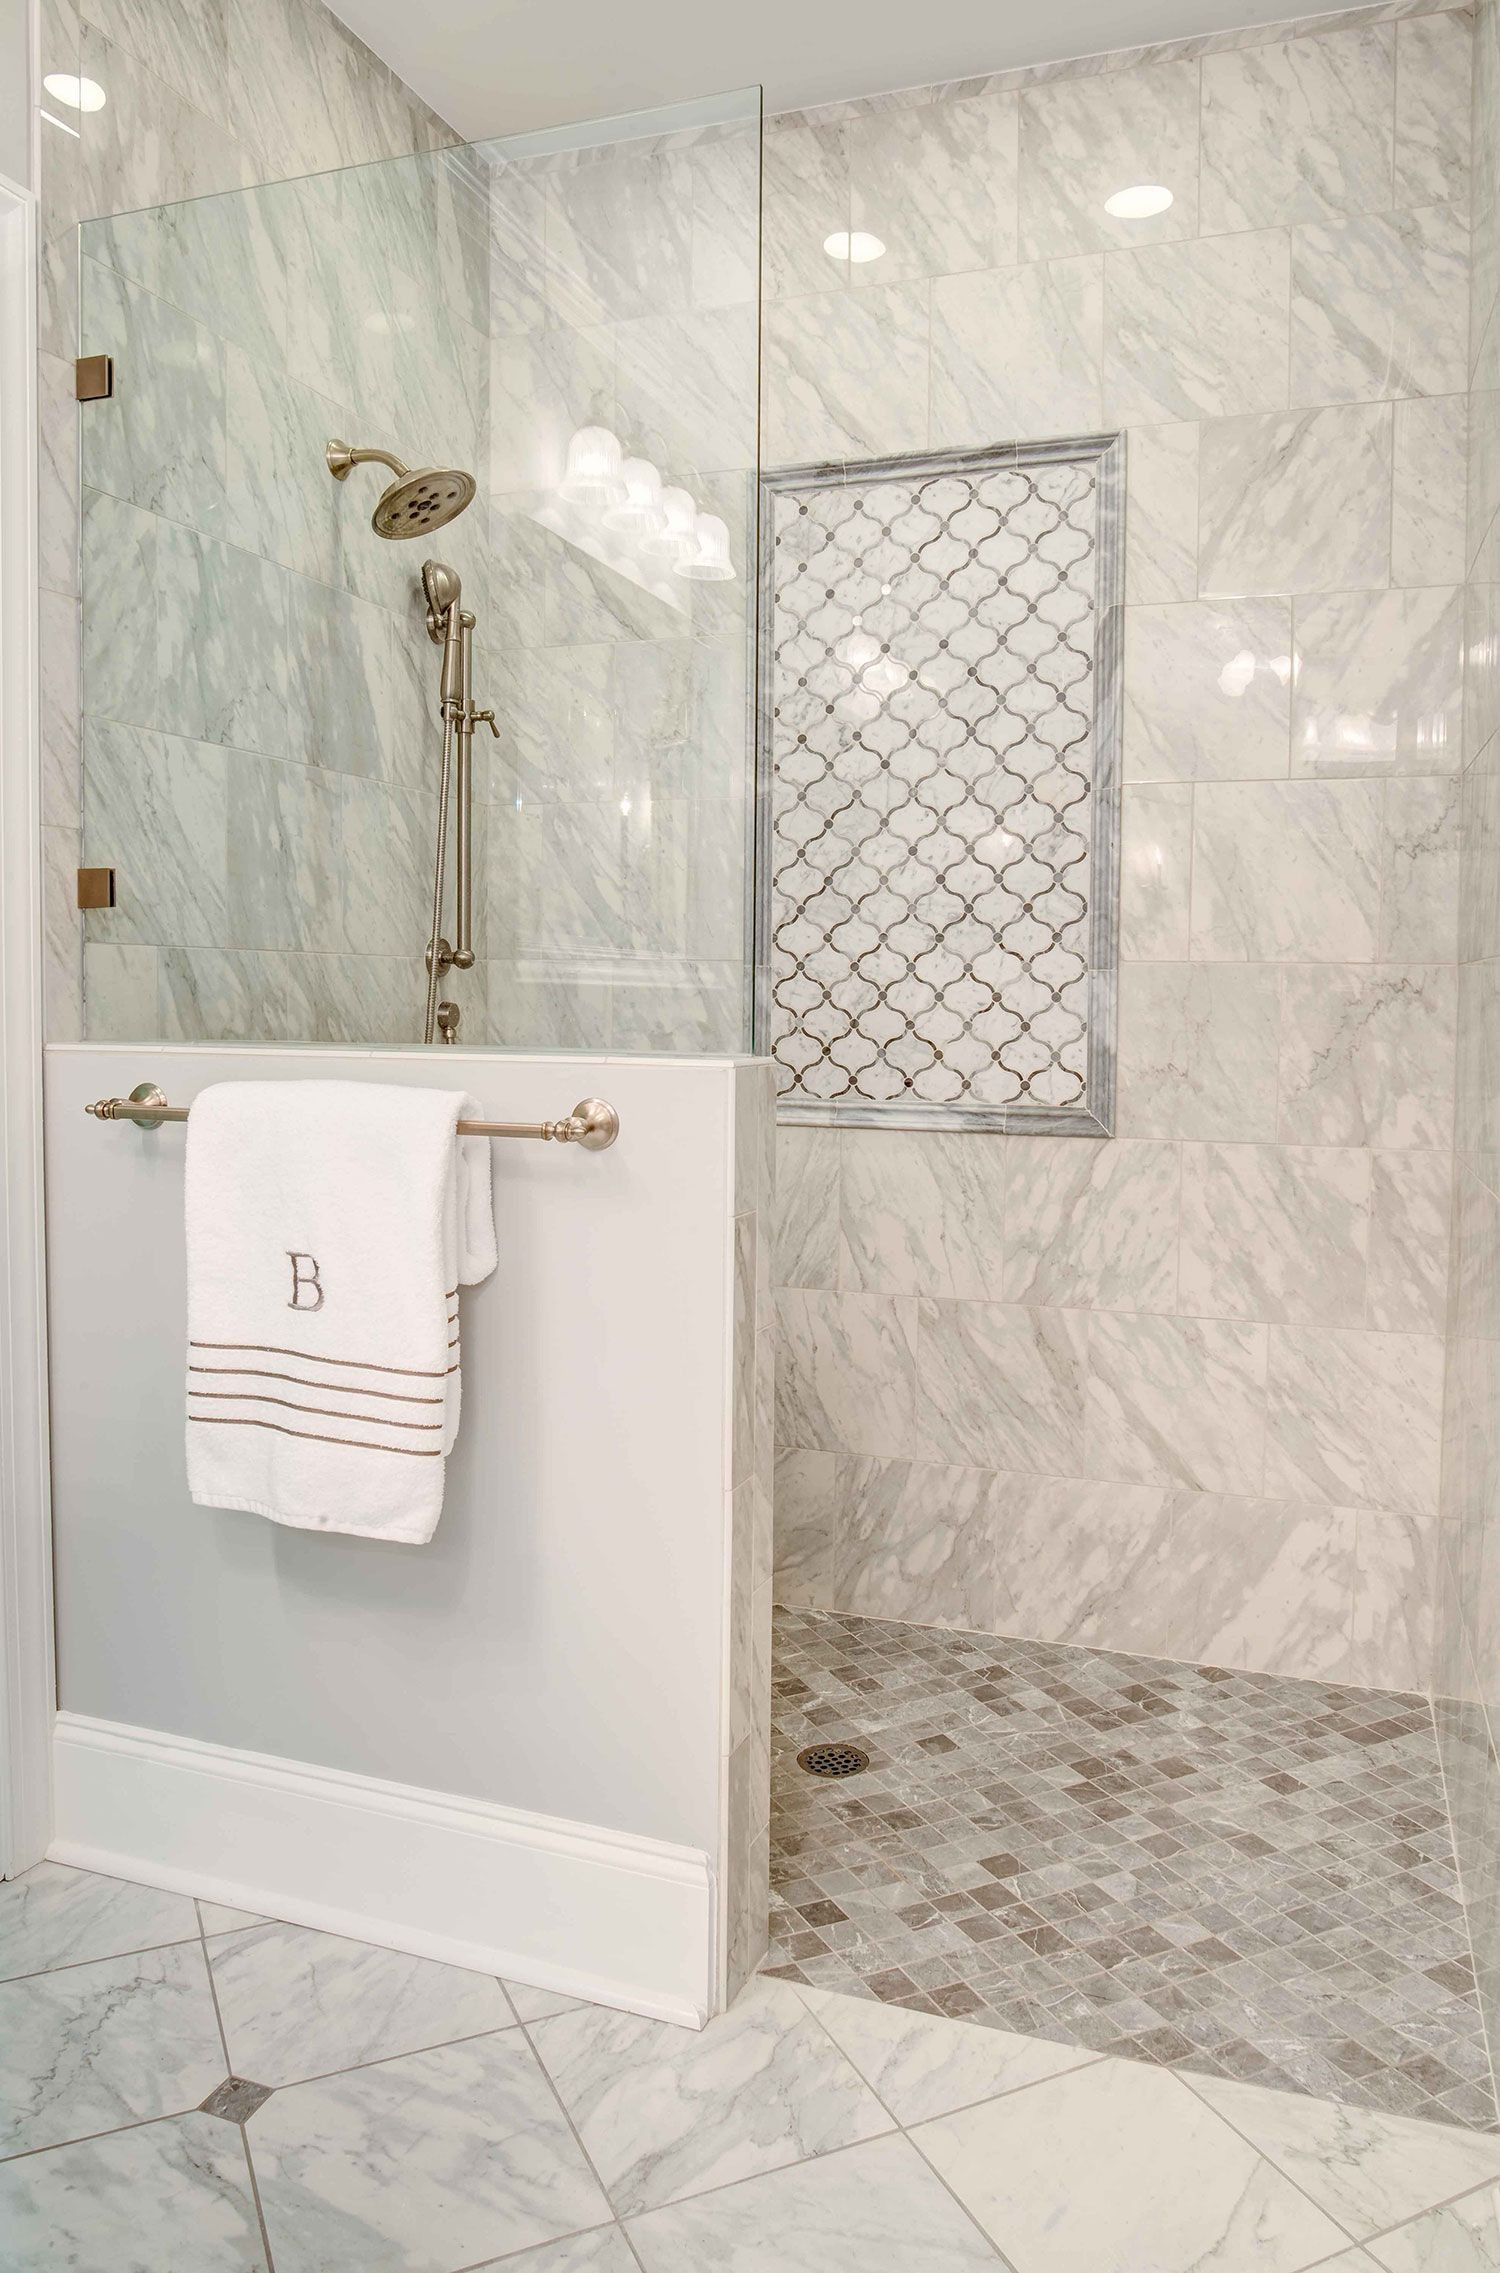 This Fabulous Shower Features A Curbless Doorless Entry For Easy Cleaning The Half Wall With Glass Above In 2020 Half Wall Shower Shower Renovation Glass Shower Doors